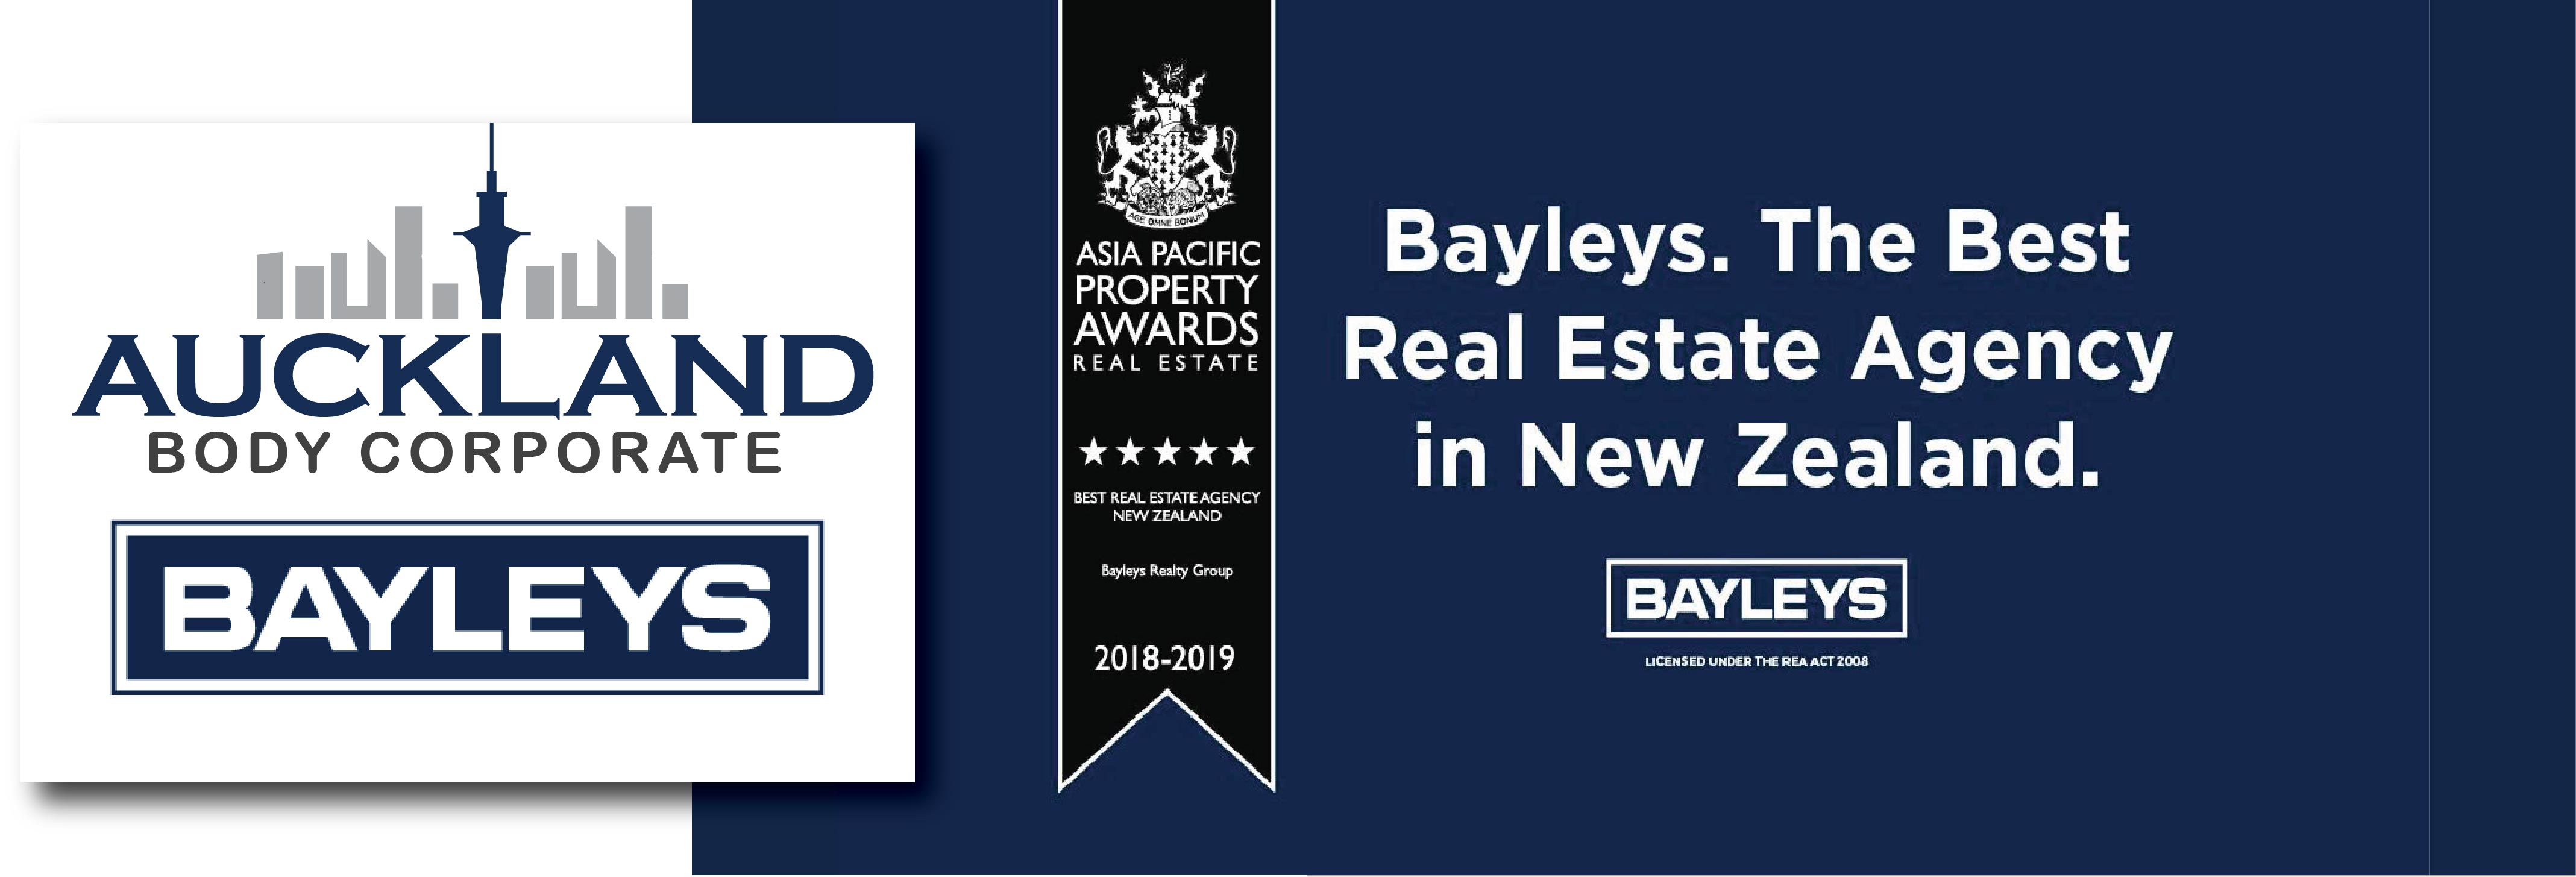 Bayleys named New Zealand's best agency at prestigious real estate awards